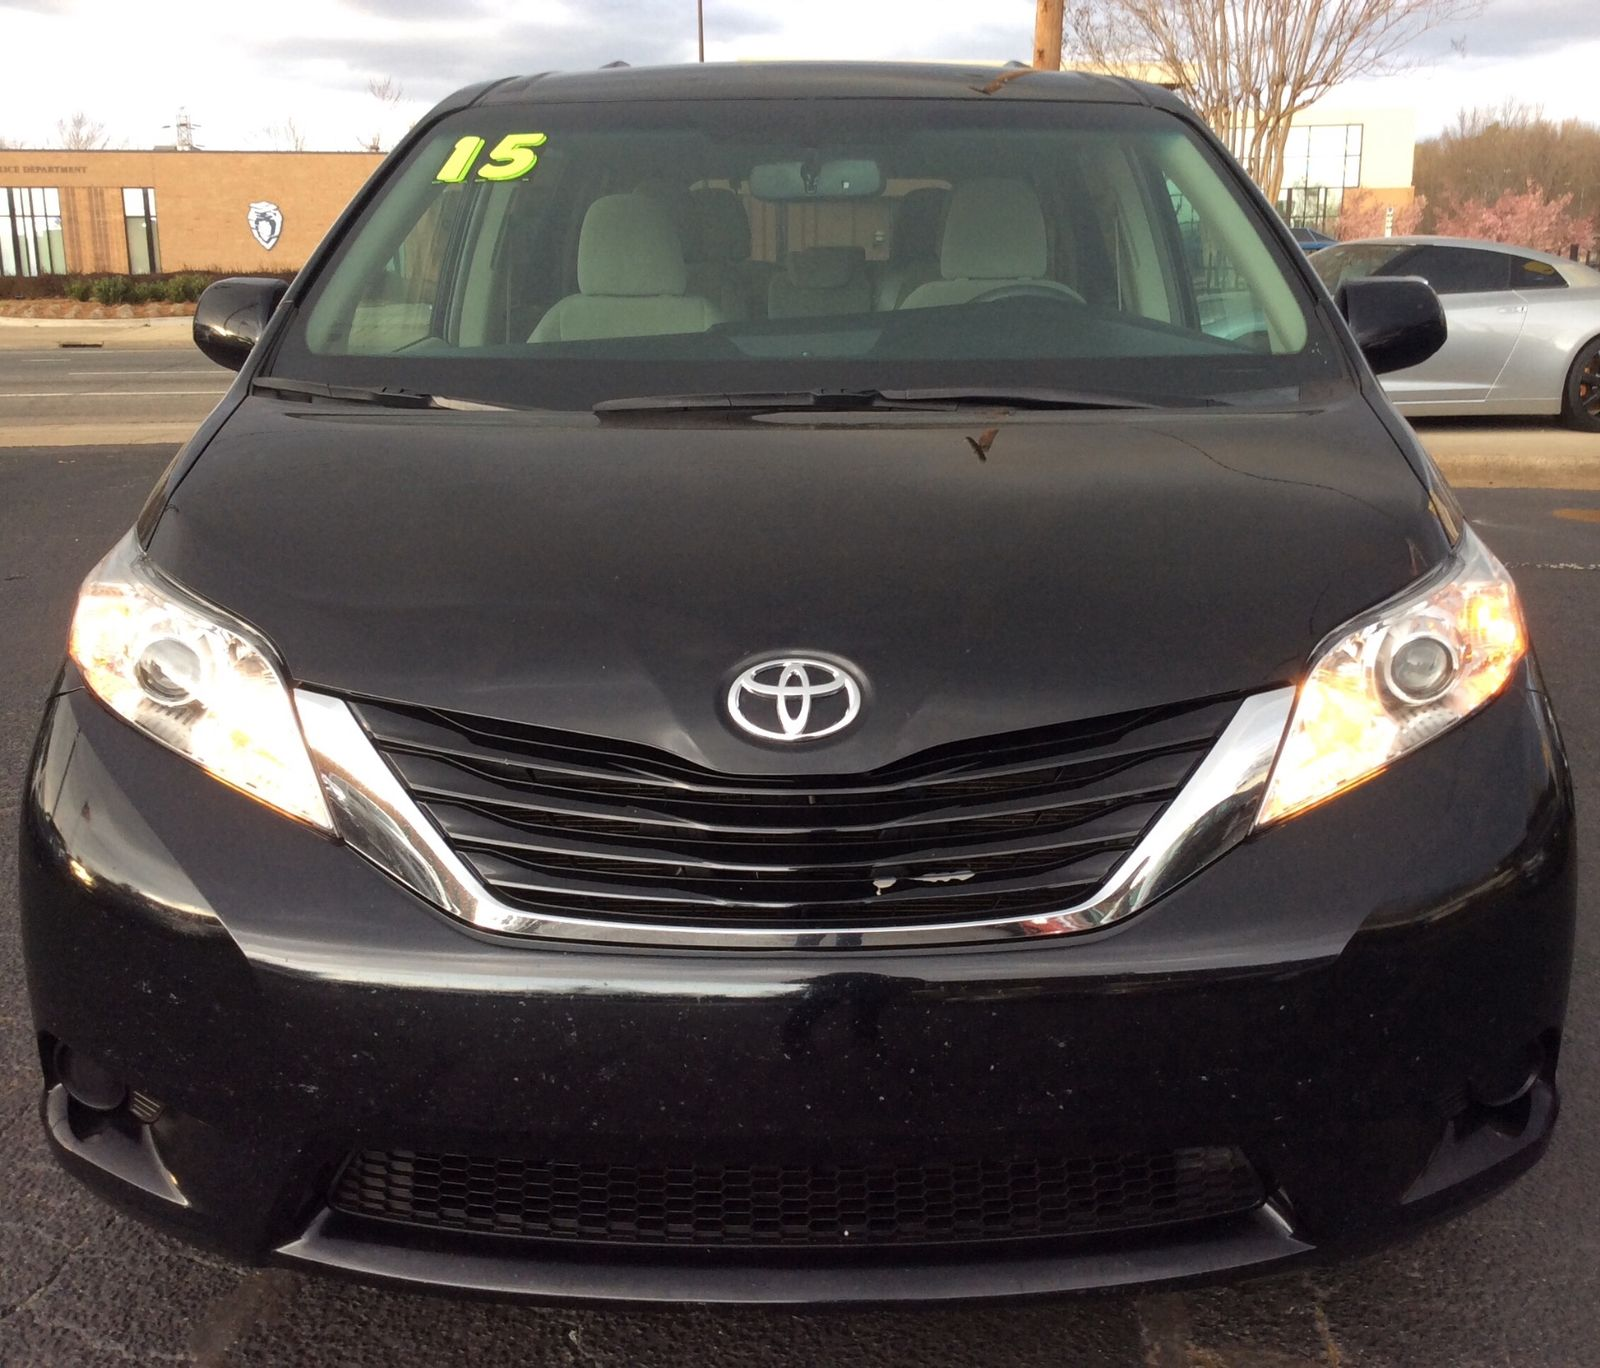 inventory toyota vmi series htm apple northstar sienna conversion e le